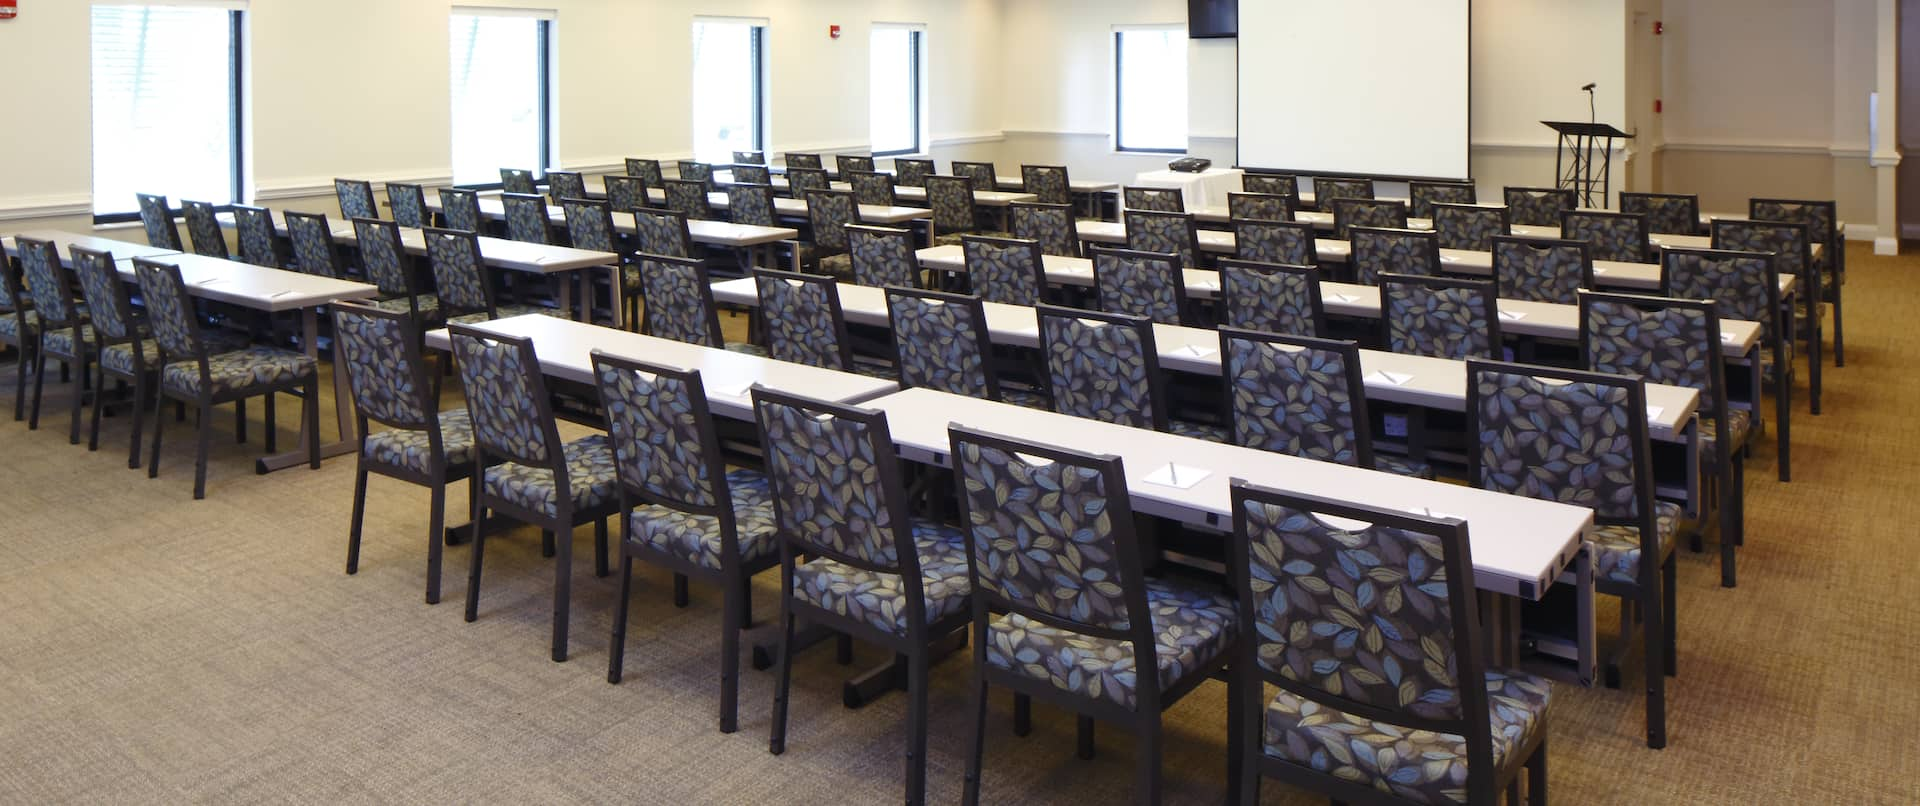 Classroom Setup in Meeting Room With Windows, Tables, Chairs, Presentation Screen, and Podium